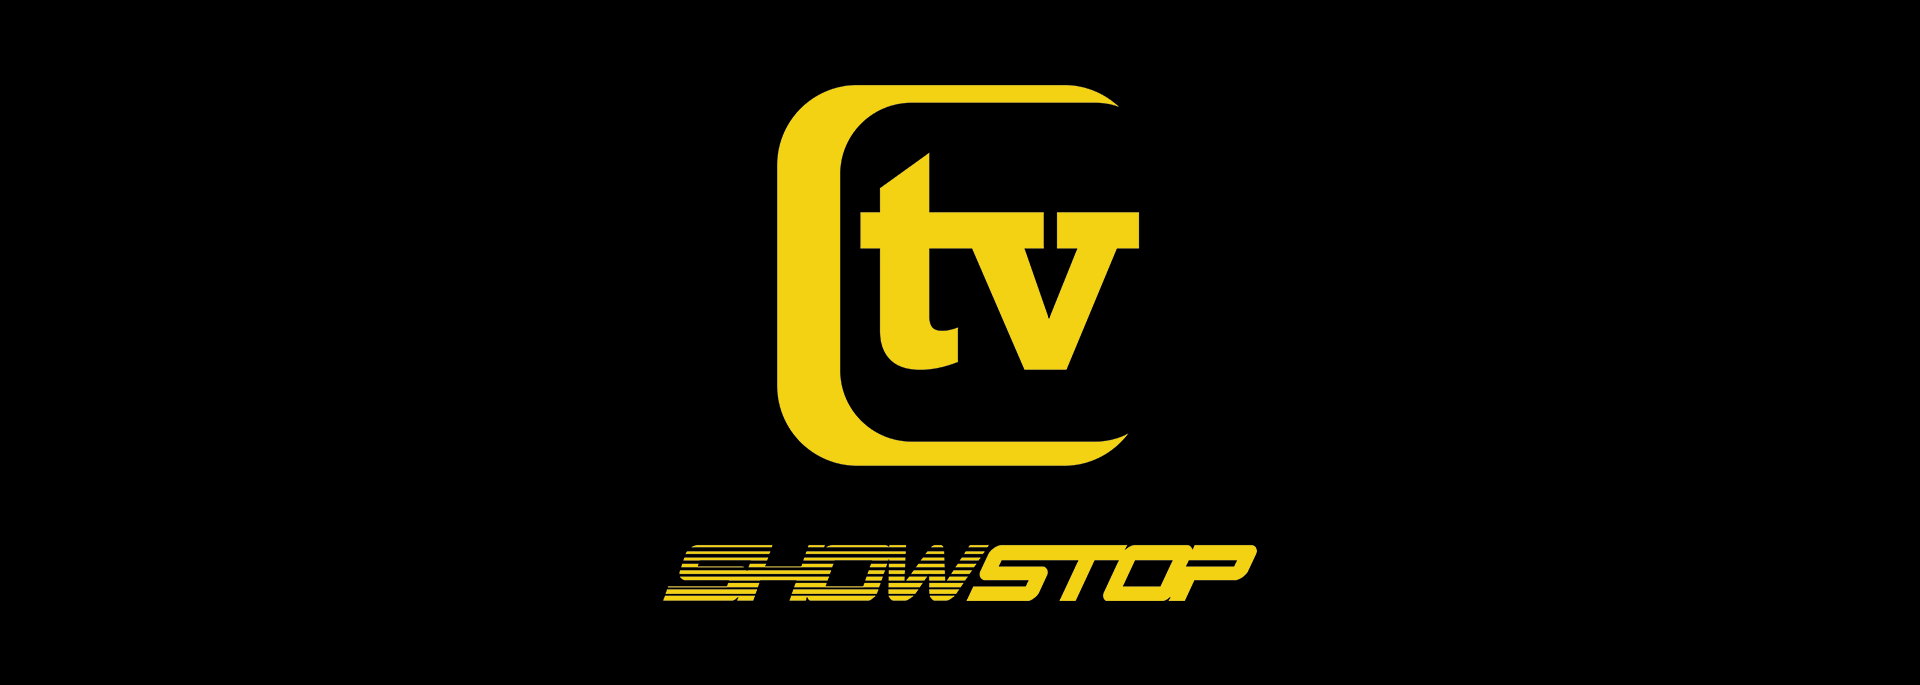 #ShowStopTV channel